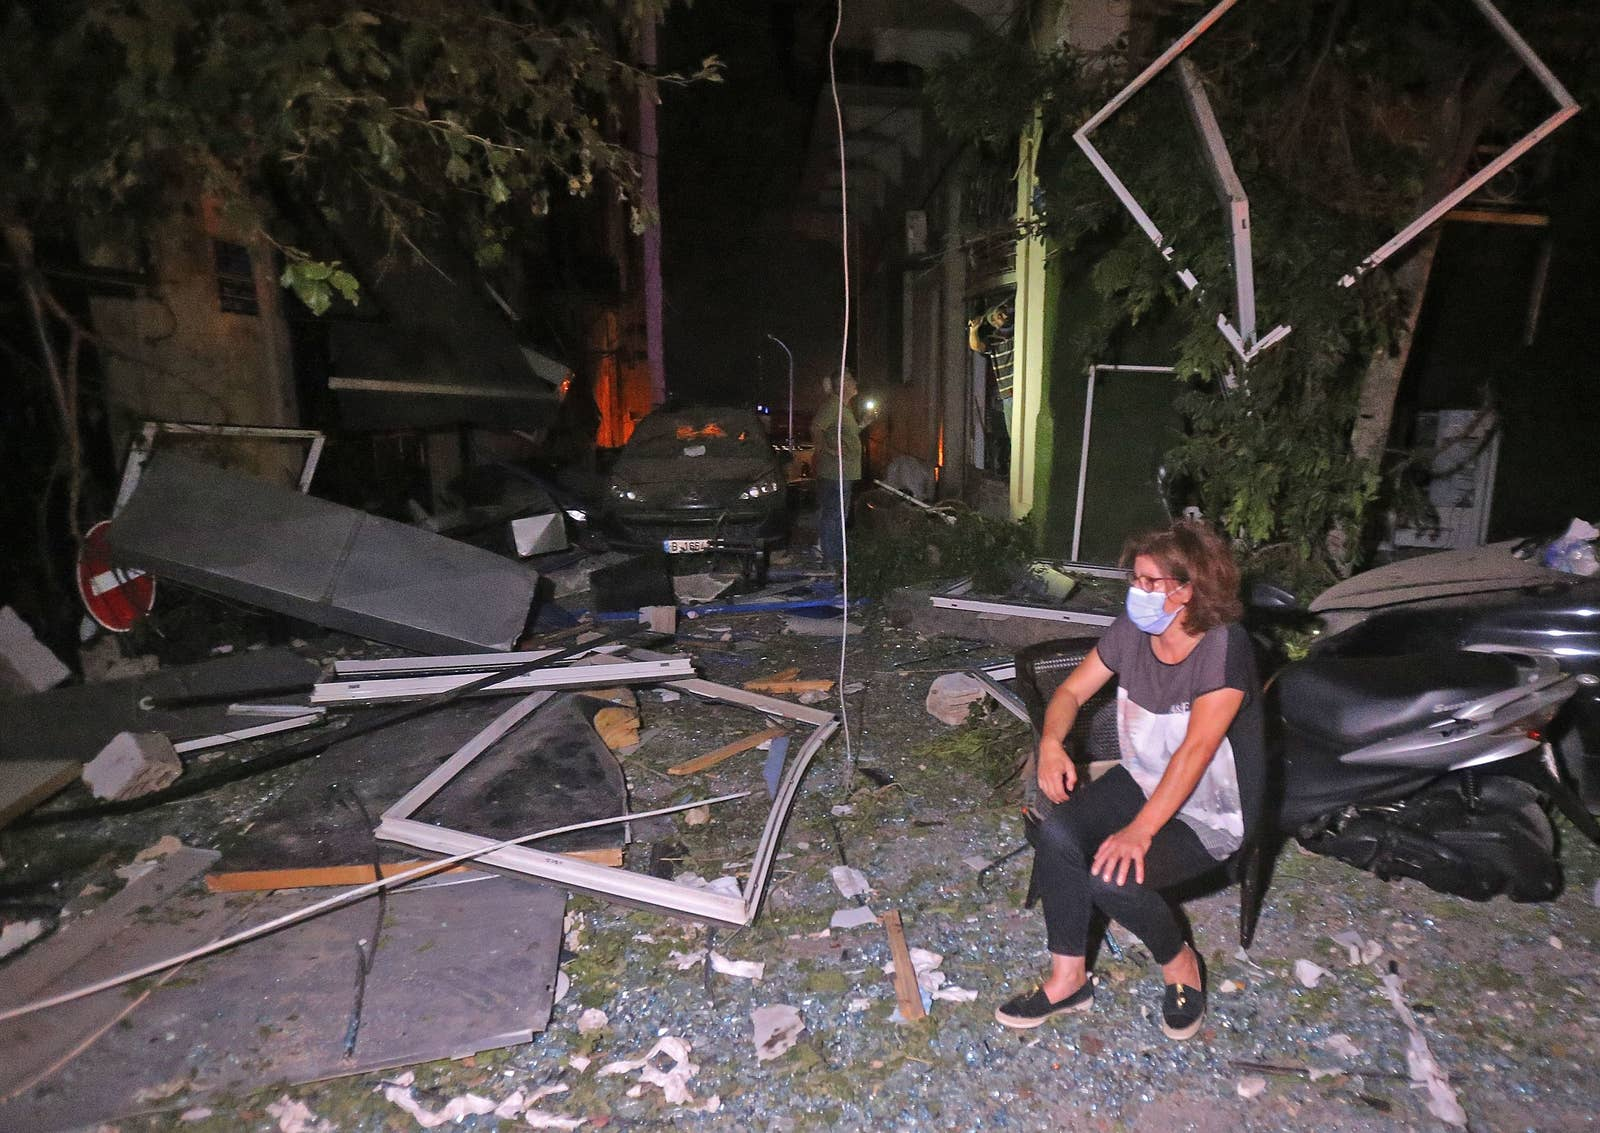 A woman sits on a chair at night on a street covered in glass and debris